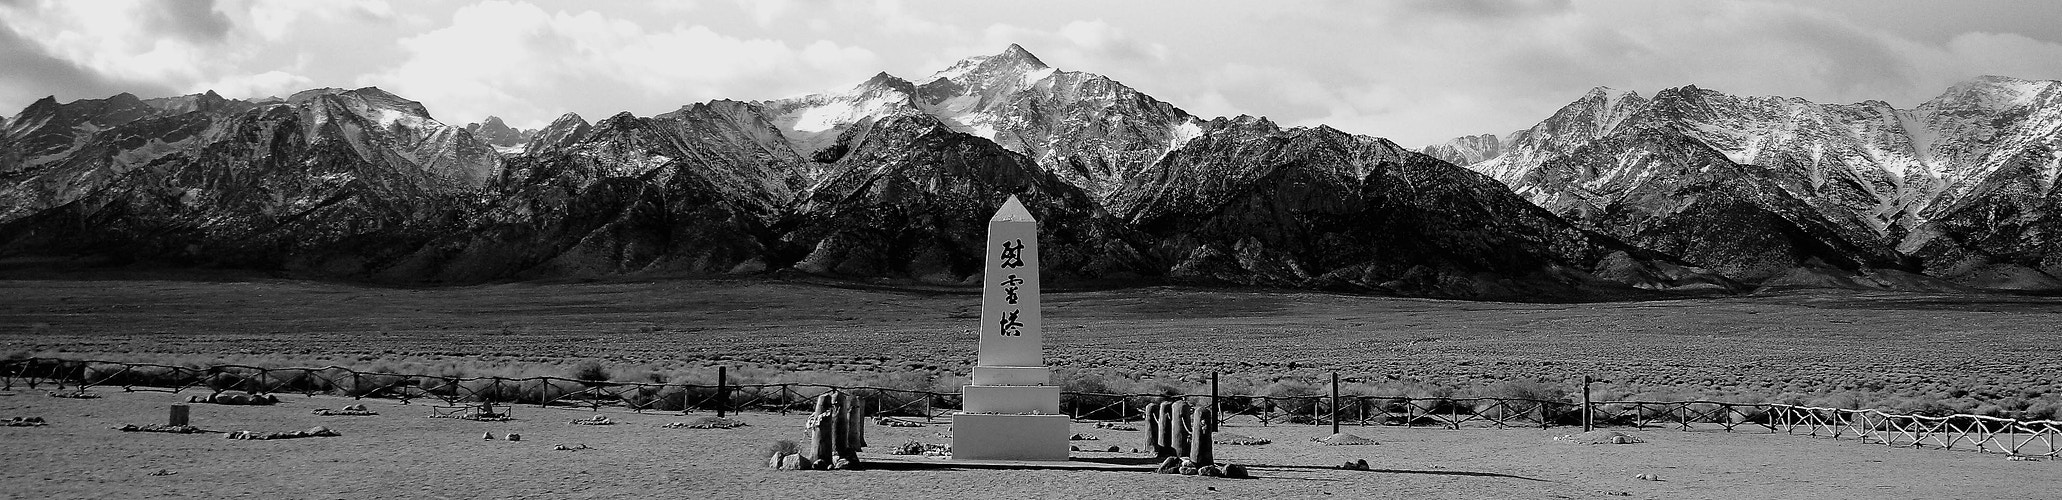 Manzanar panorama - around the bend photos photography by Sheldon Ballard